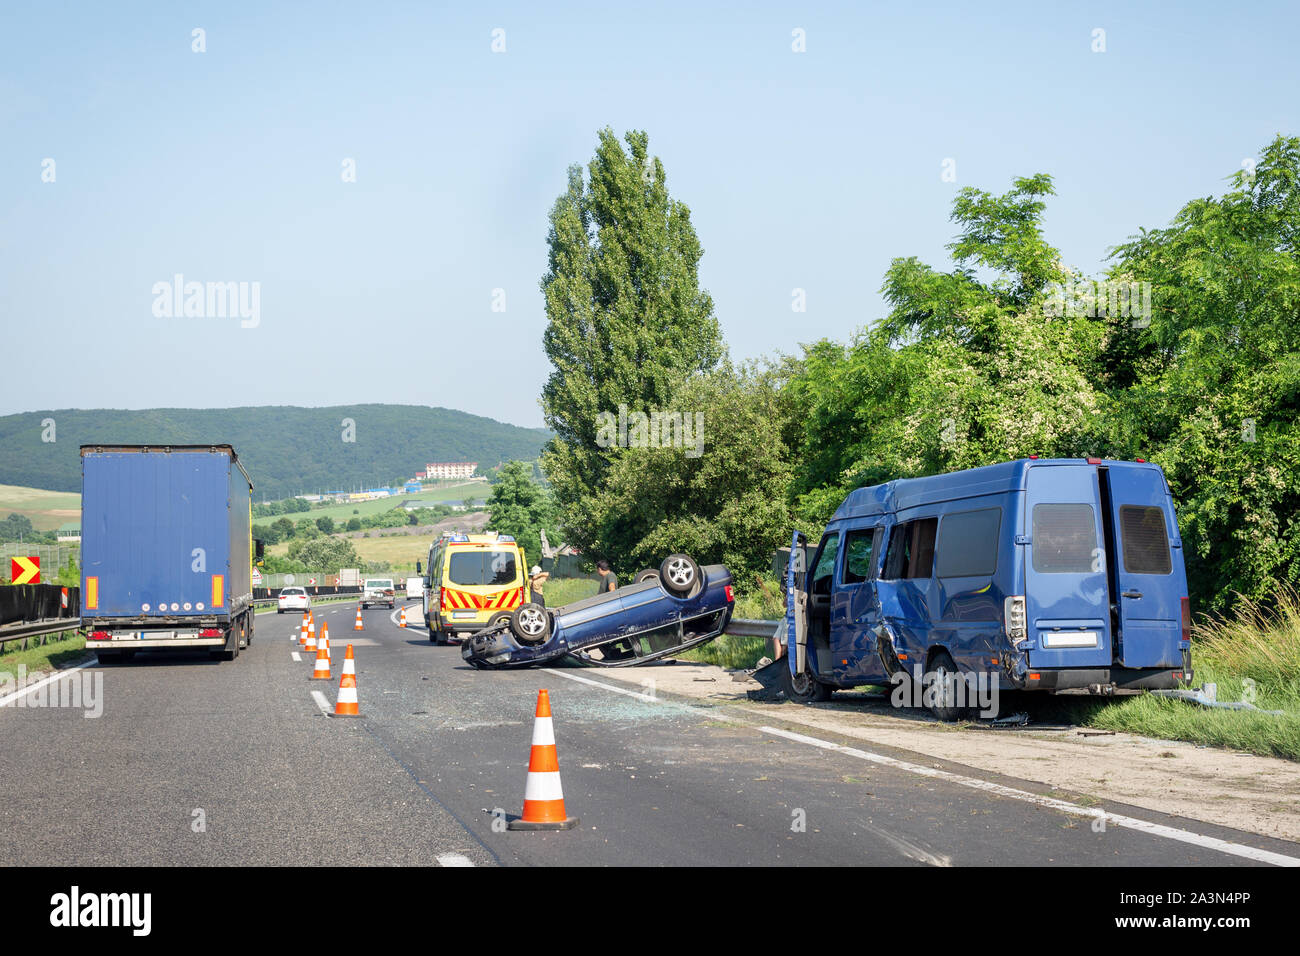 Car crash accident on highway. Damaged blue minibus after collision, overturned car and ambulance car on roadside. Traffic cones at accident site - Stock Image